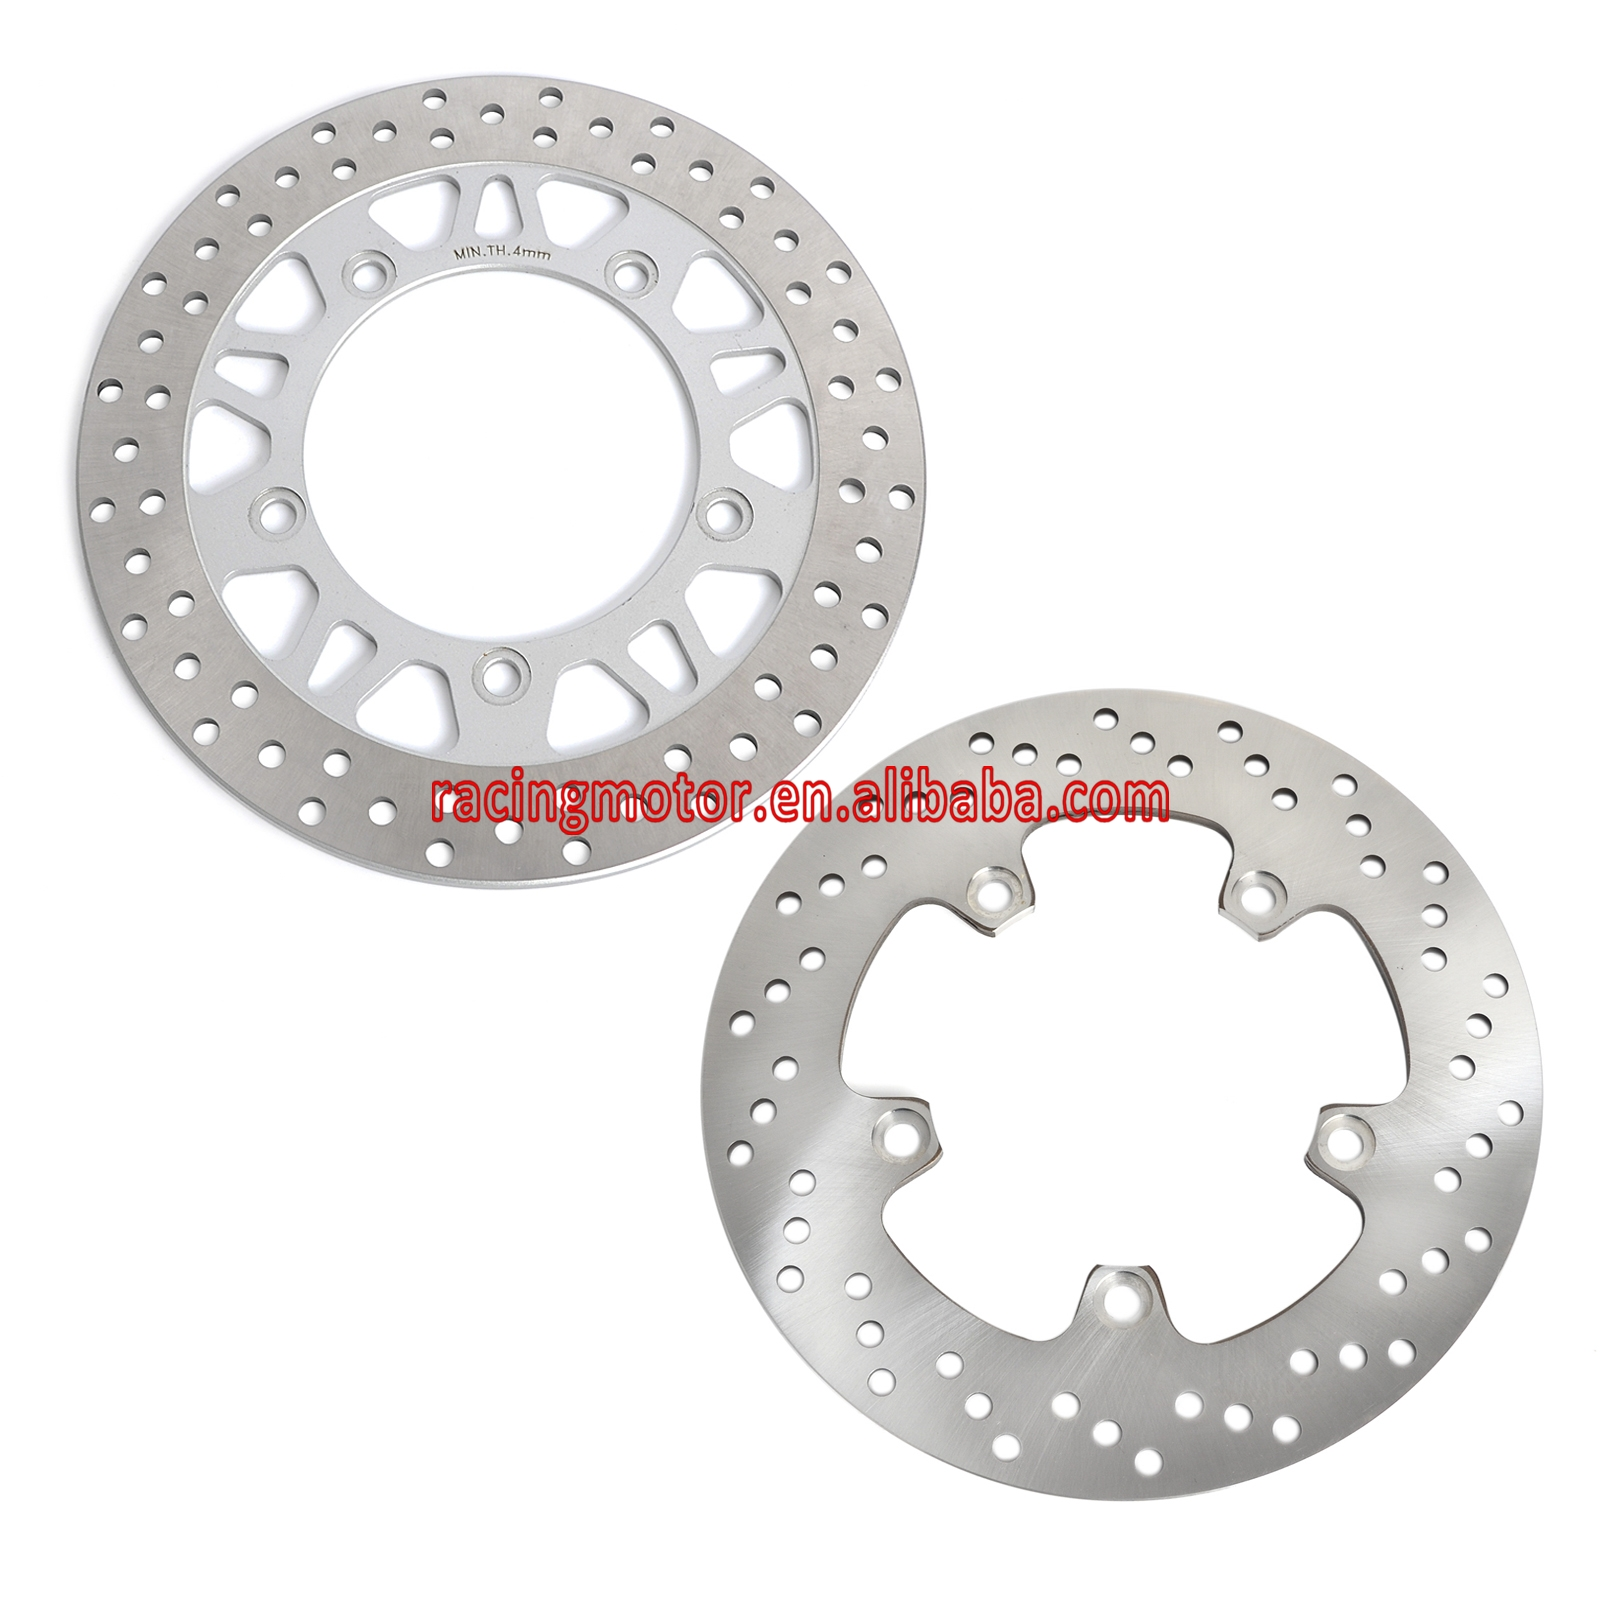 Motorycle Front & Rear Brake Disc Rotor for Suzuki AN650 2004 - 2012 2005 2006 2007 2008 2009 2010 2011 AN 650 new brand motorcycle accessories gold front brake discs rotor for suzuki gsxr1000 2005 2006 2007 2008